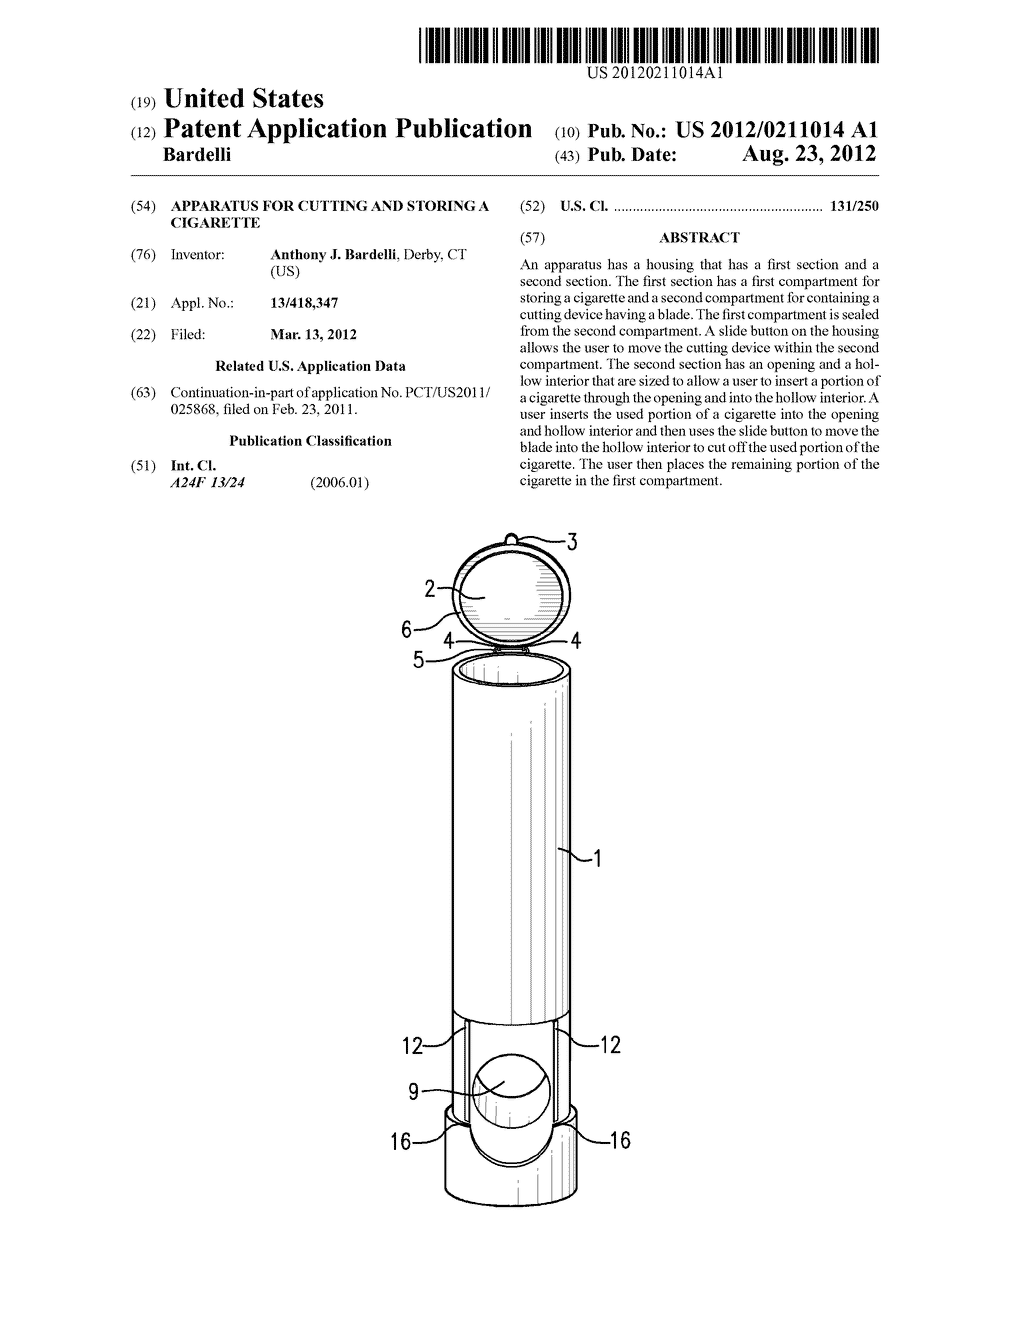 Apparatus For Cutting And Storing A Cigarette - diagram, schematic, and image 01